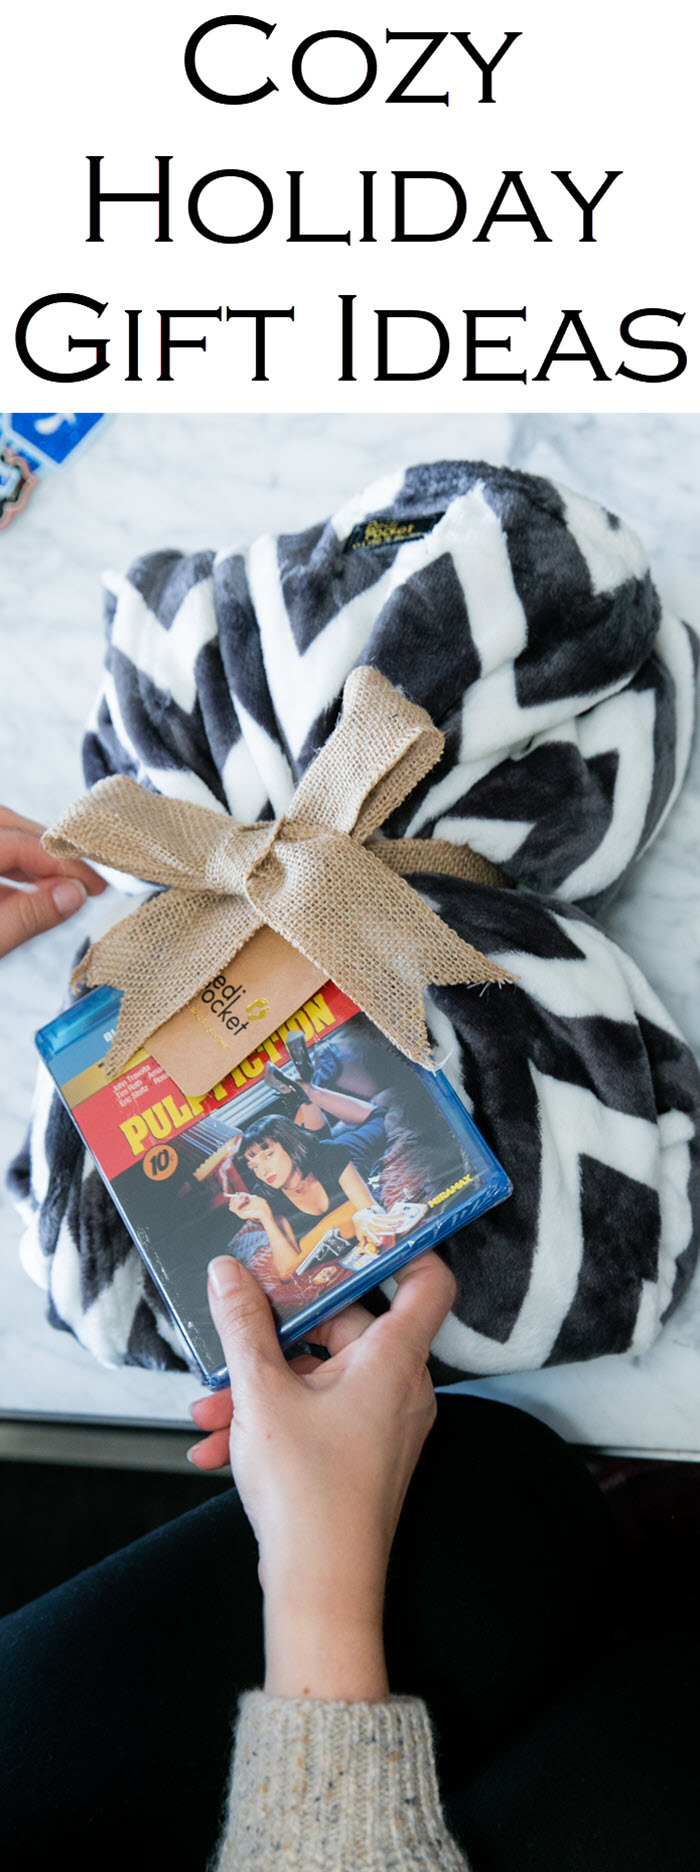 PediPocket Blanket Cozy Holiday Gift Idea #giftideas #cozy #giftguides #fashionblog #fashionblogger #homedecor #homedesign #christmasgift #holidaygift